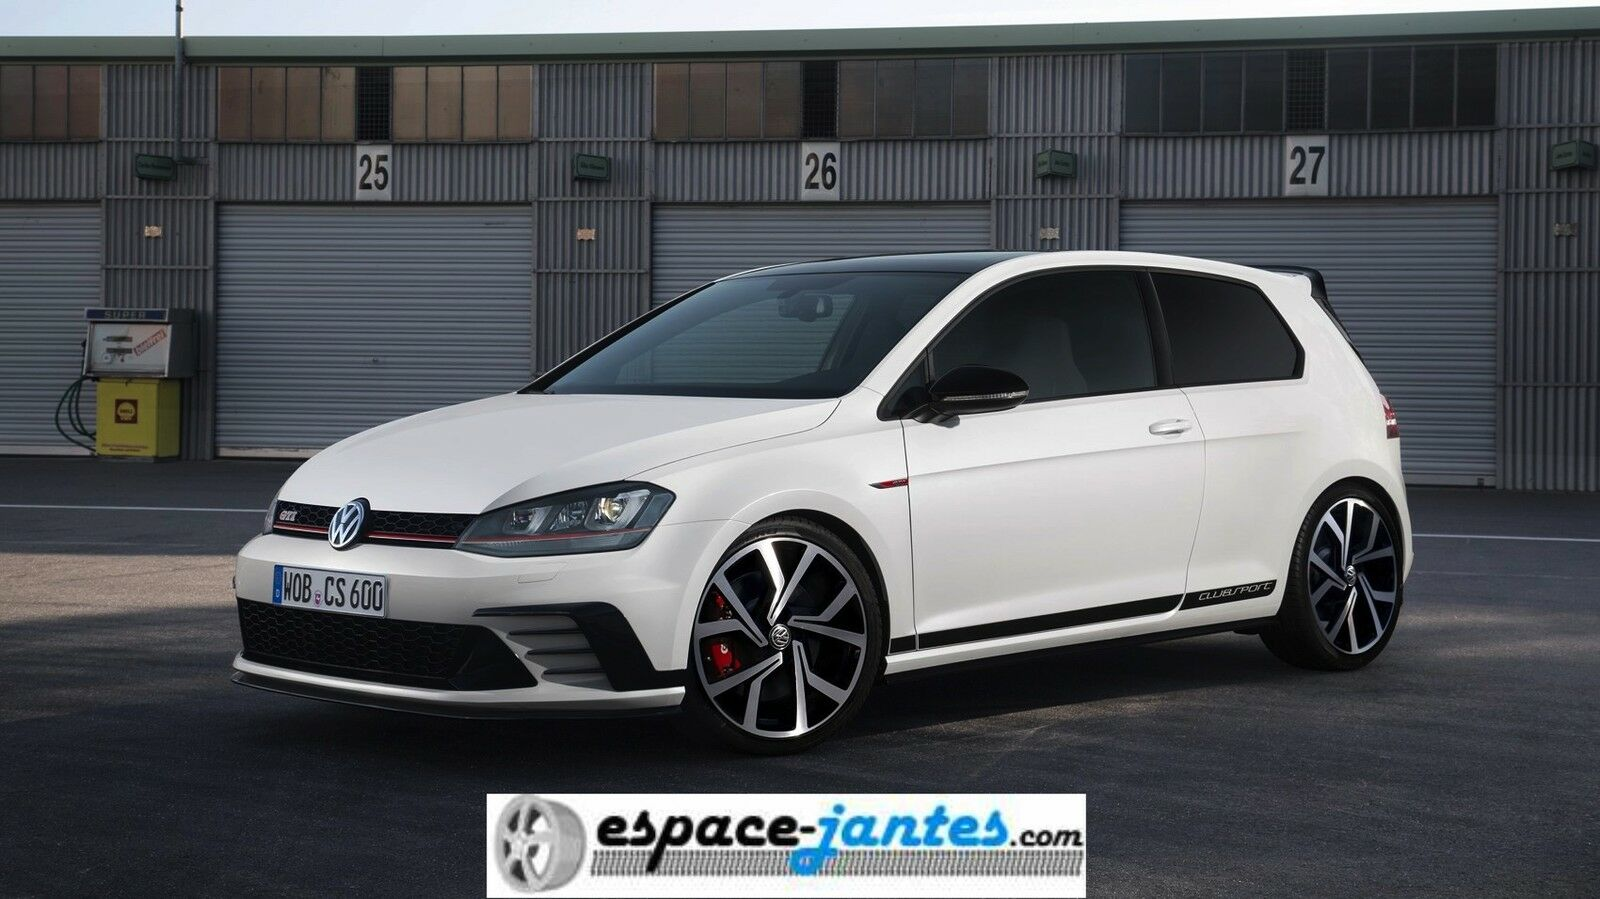 4 jantes alu neuves type vw golf 7 vii gti clubsport 18 scirocco passat eur 680 00 picclick fr. Black Bedroom Furniture Sets. Home Design Ideas